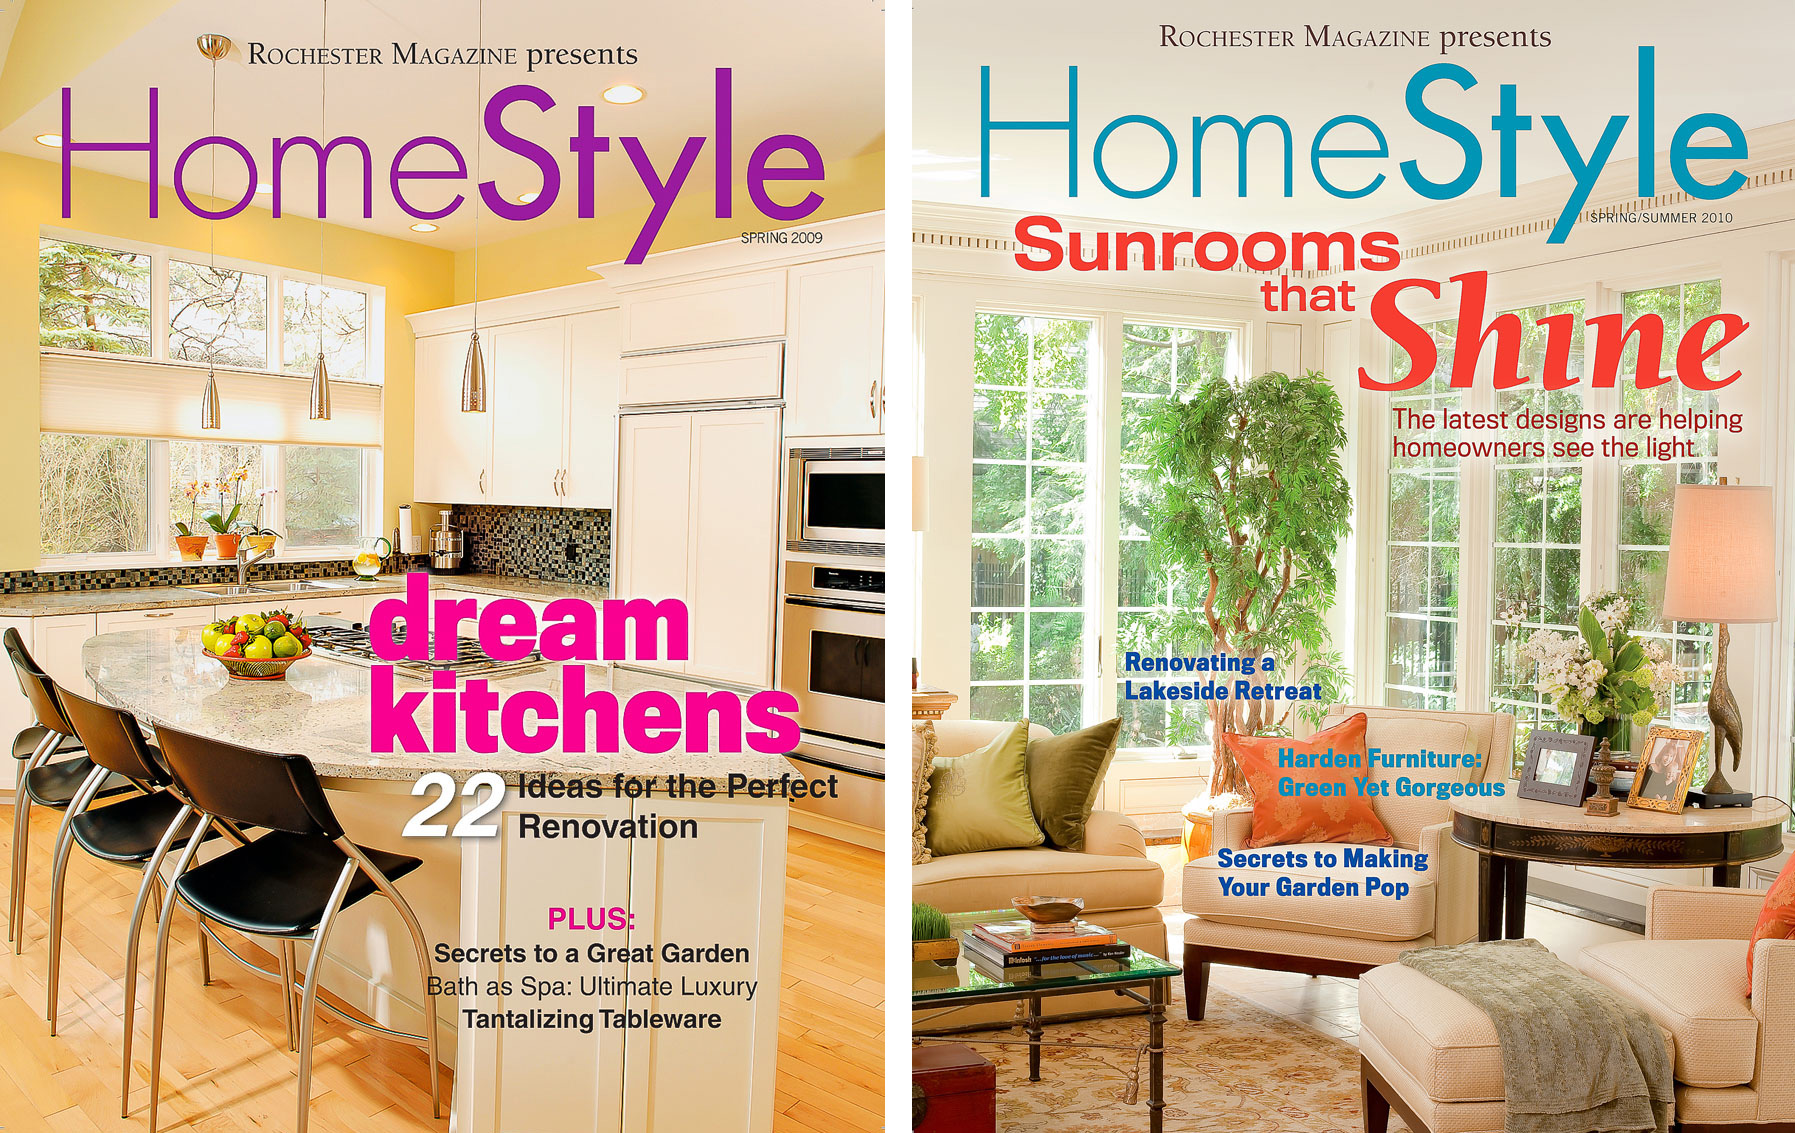 homestyle-covers.jpg